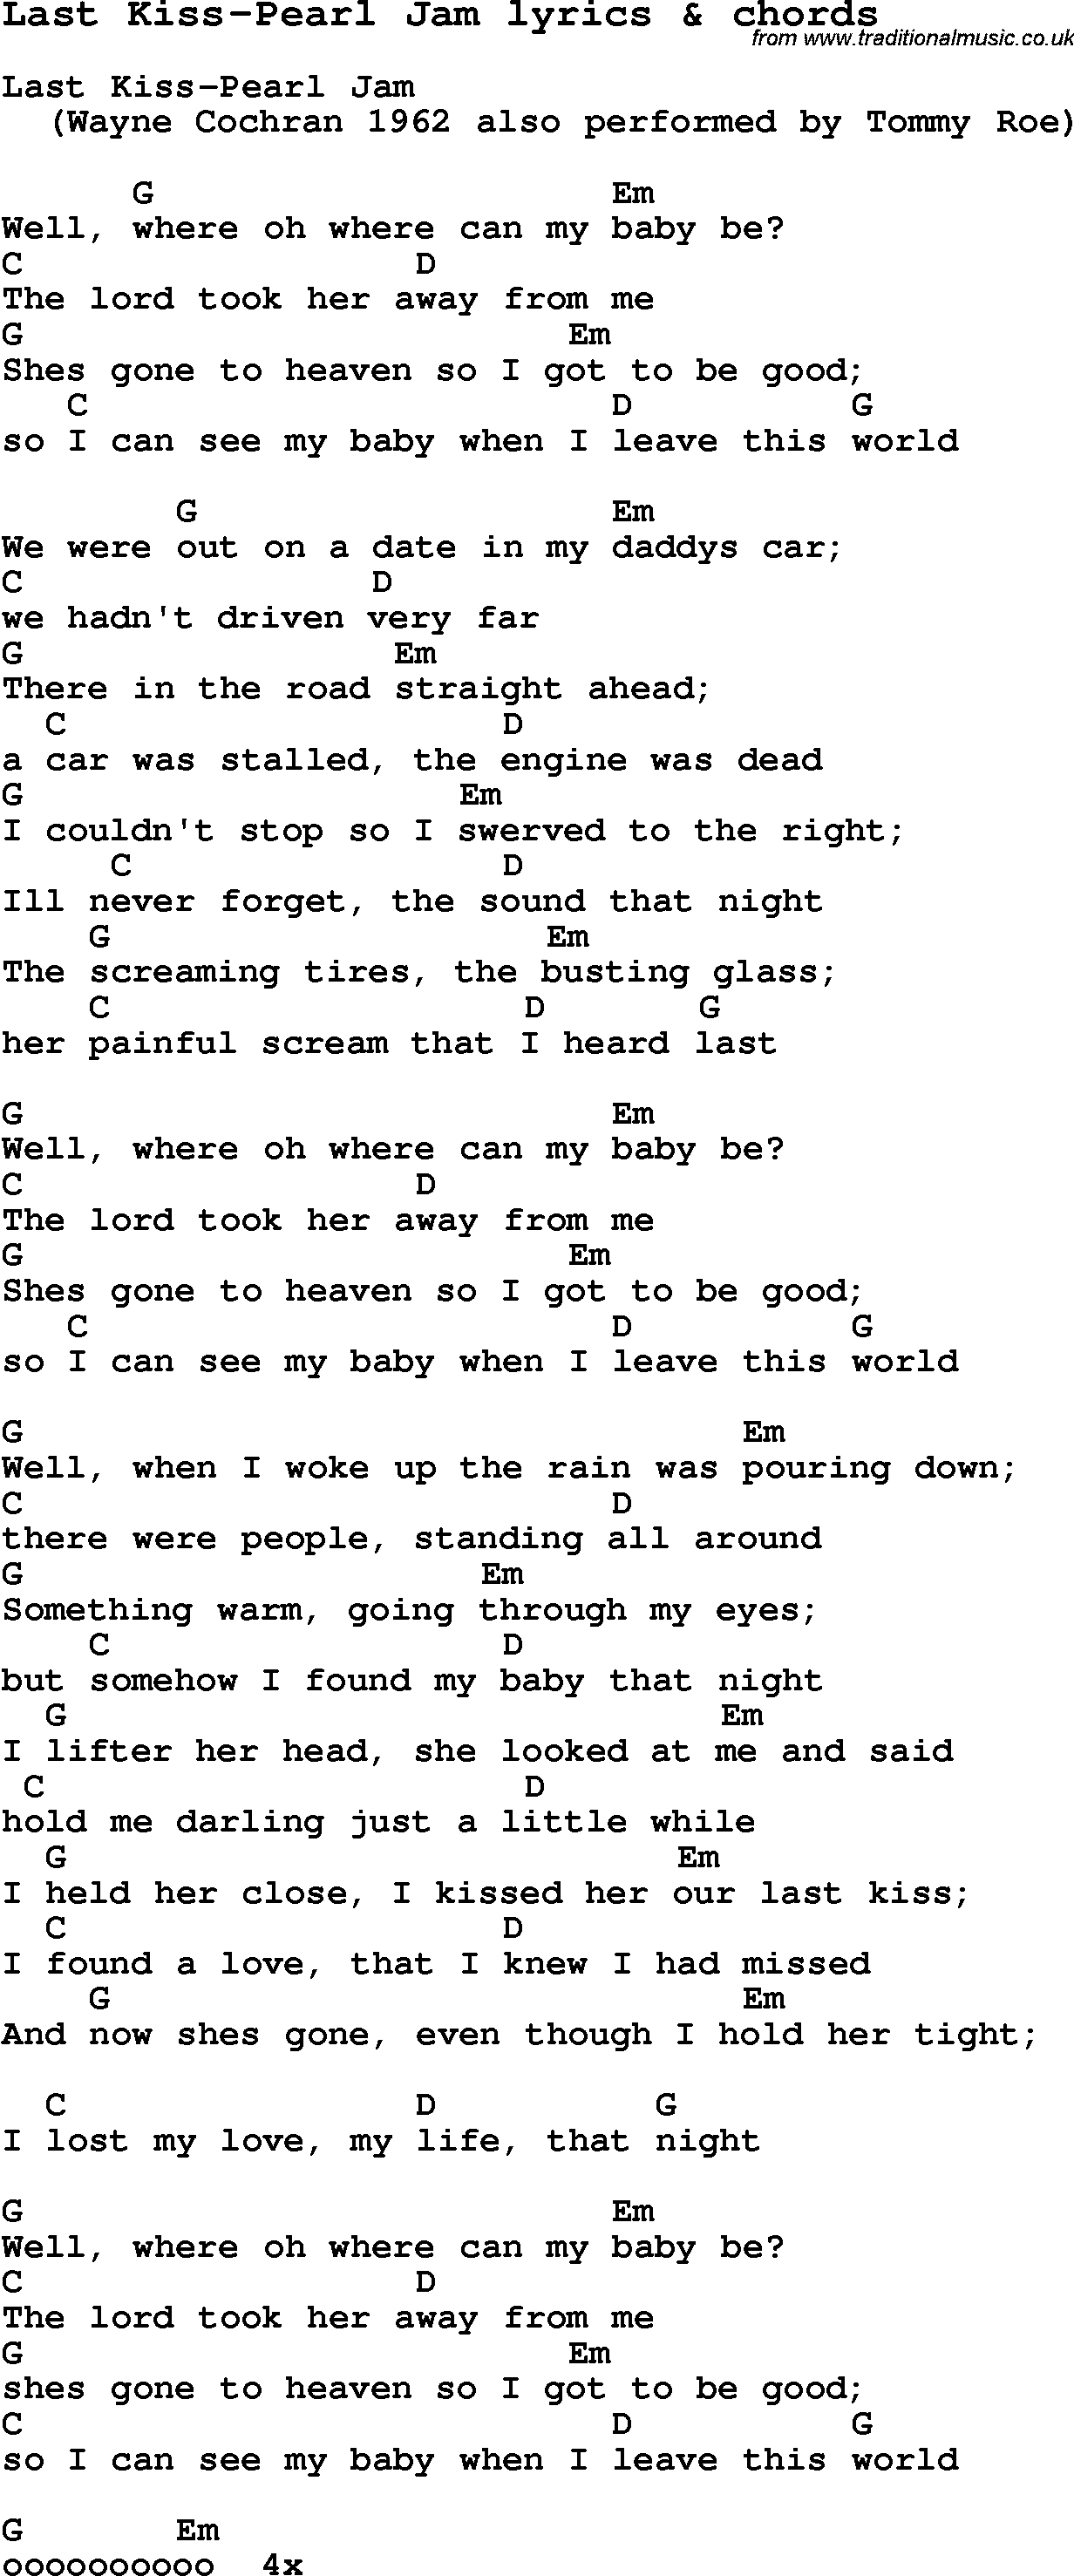 Love Song Lyrics For Last Kiss Pearl Jam With Chords